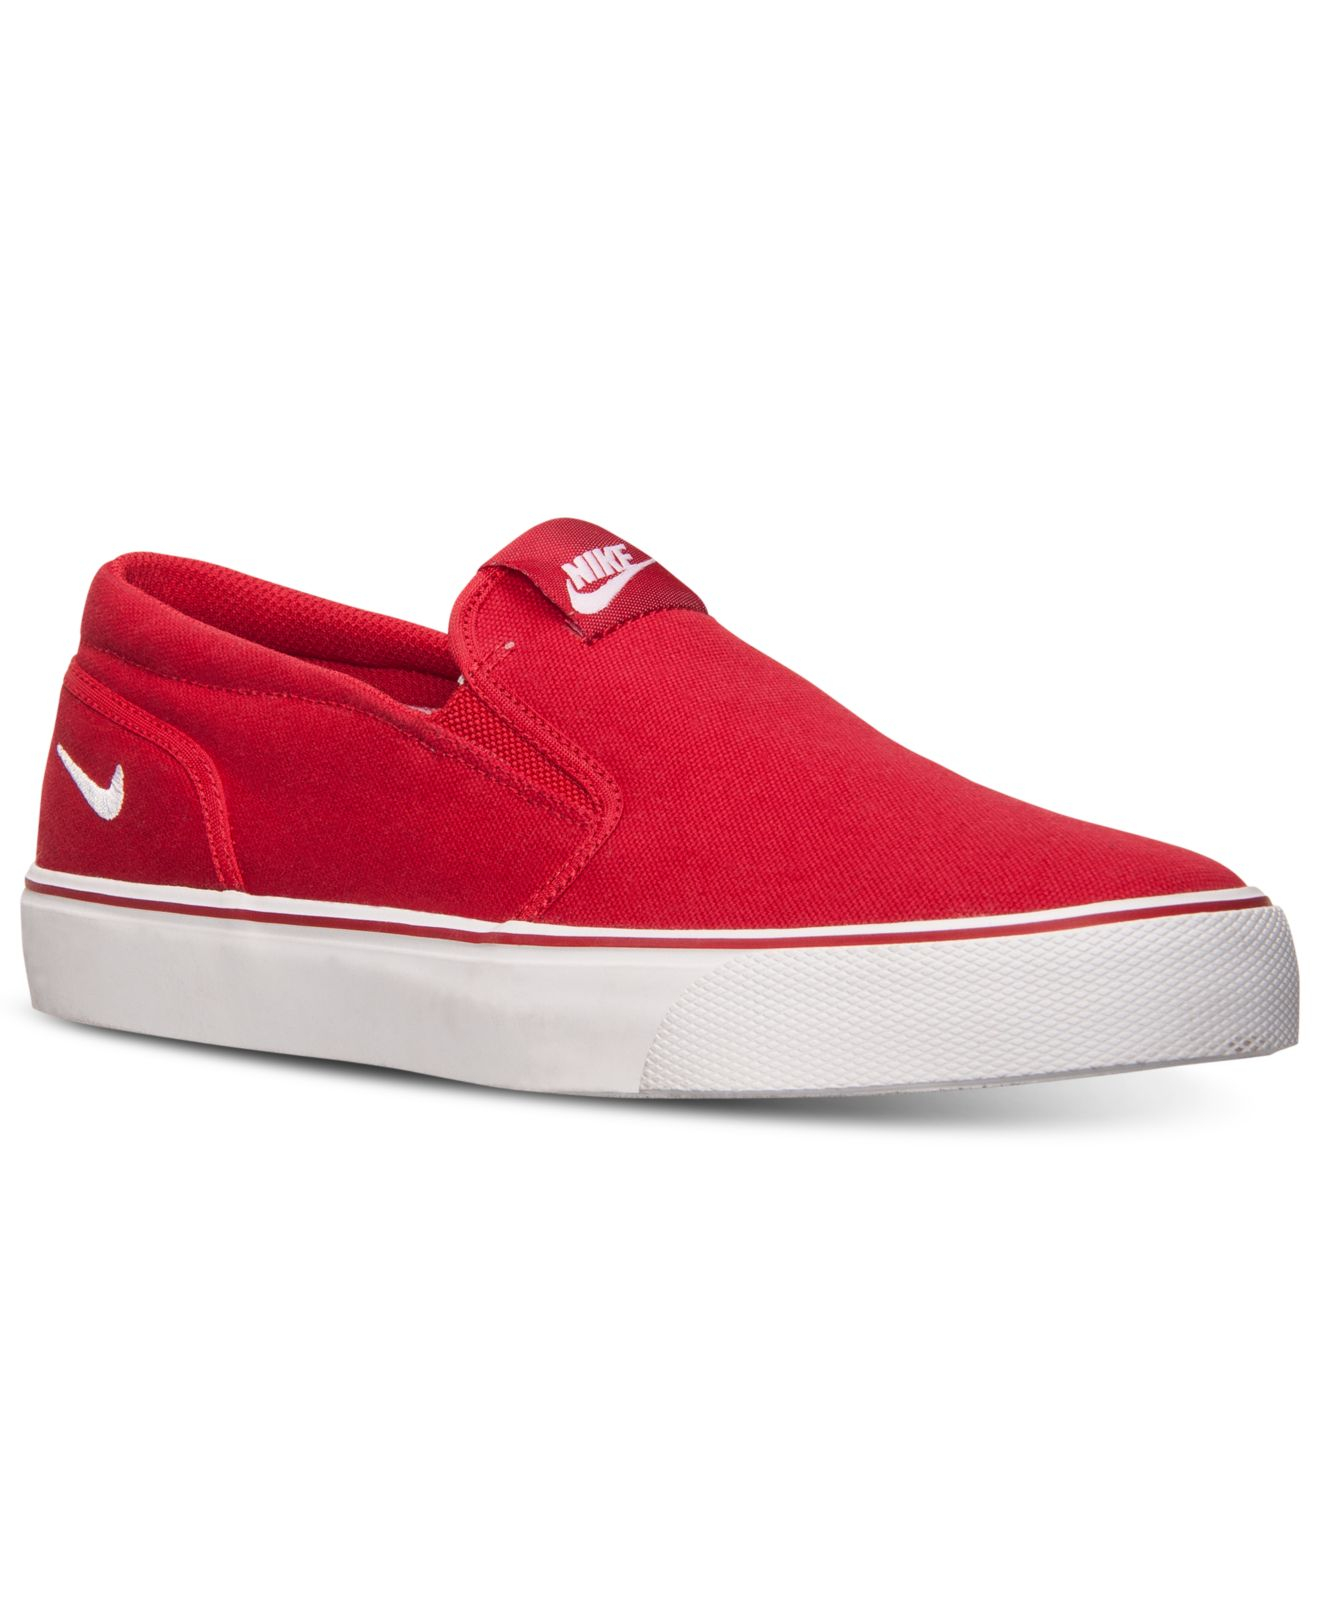 bc2a73d436a5 ... denmark lyst nike mens toki slip txt casual sneakers from finish line  in ac819 353f9